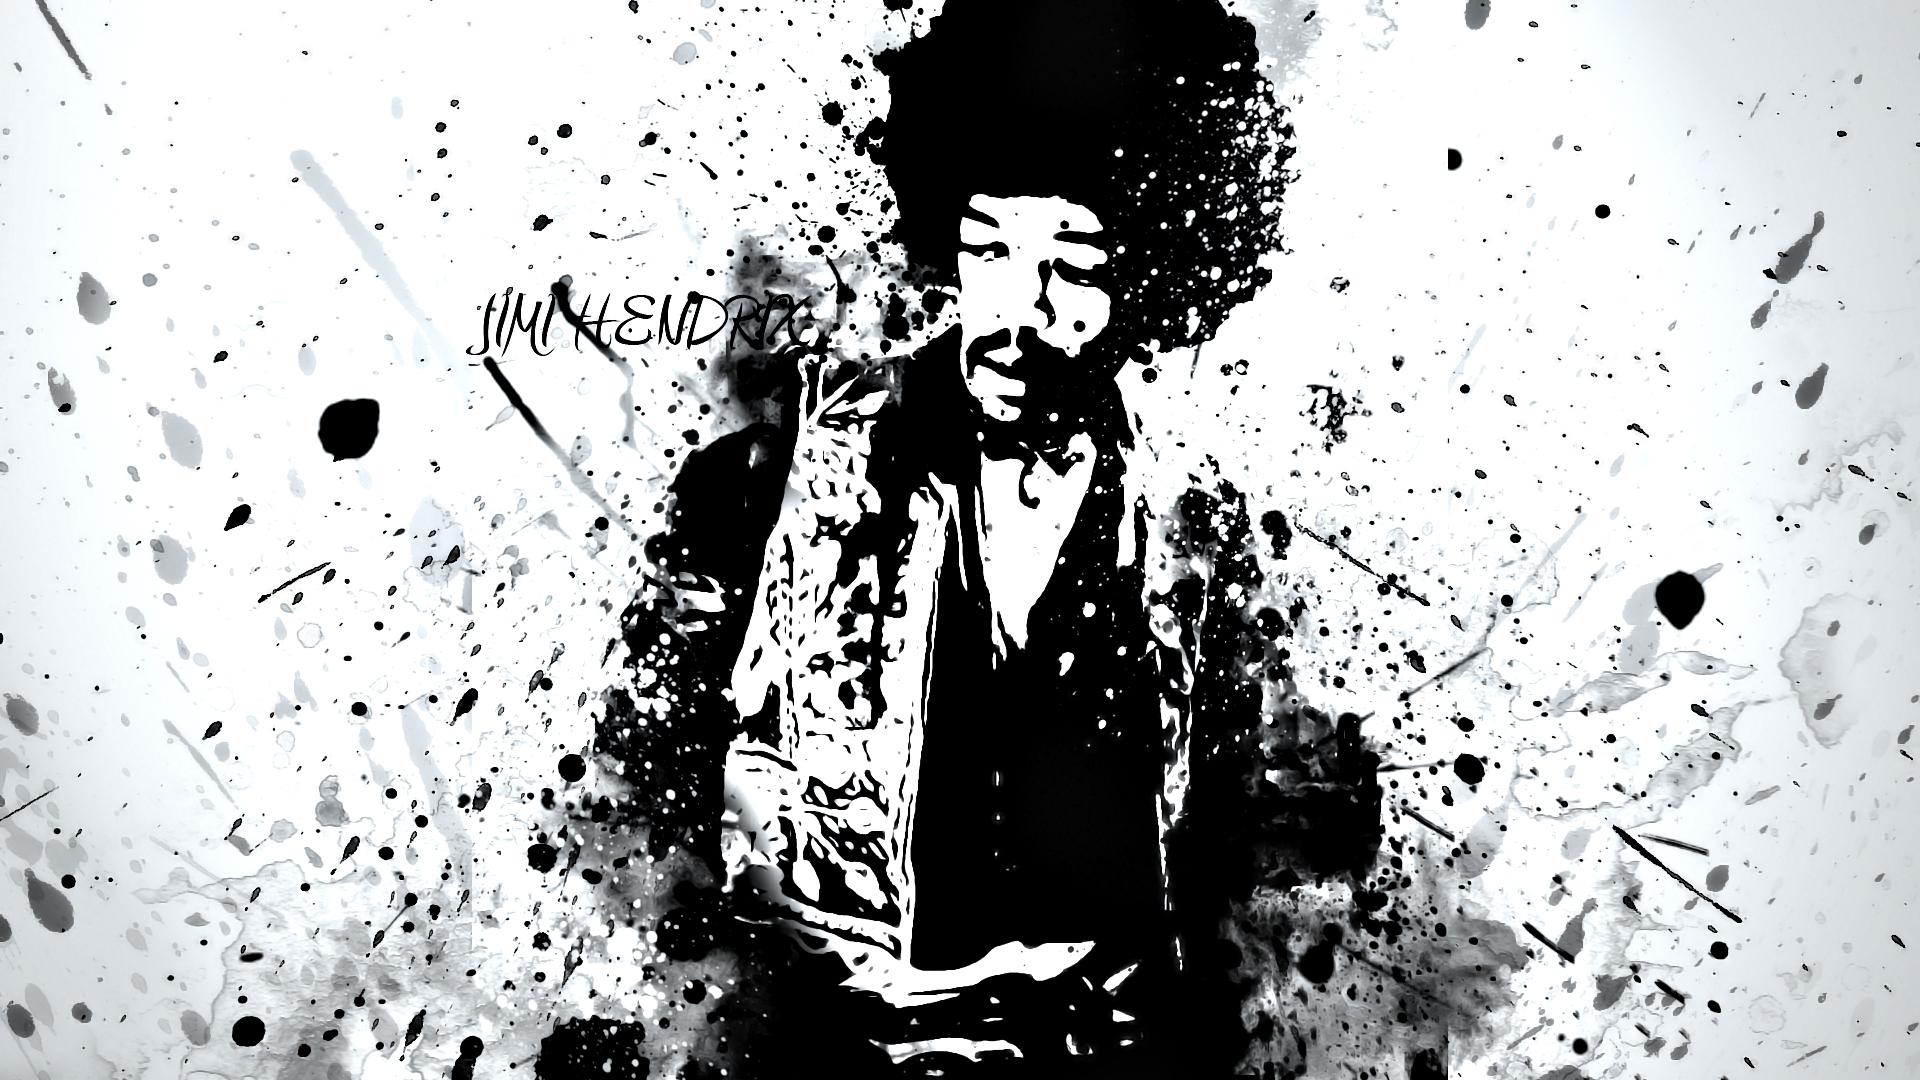 jimi hendrix wallpaper 10 - photo #29